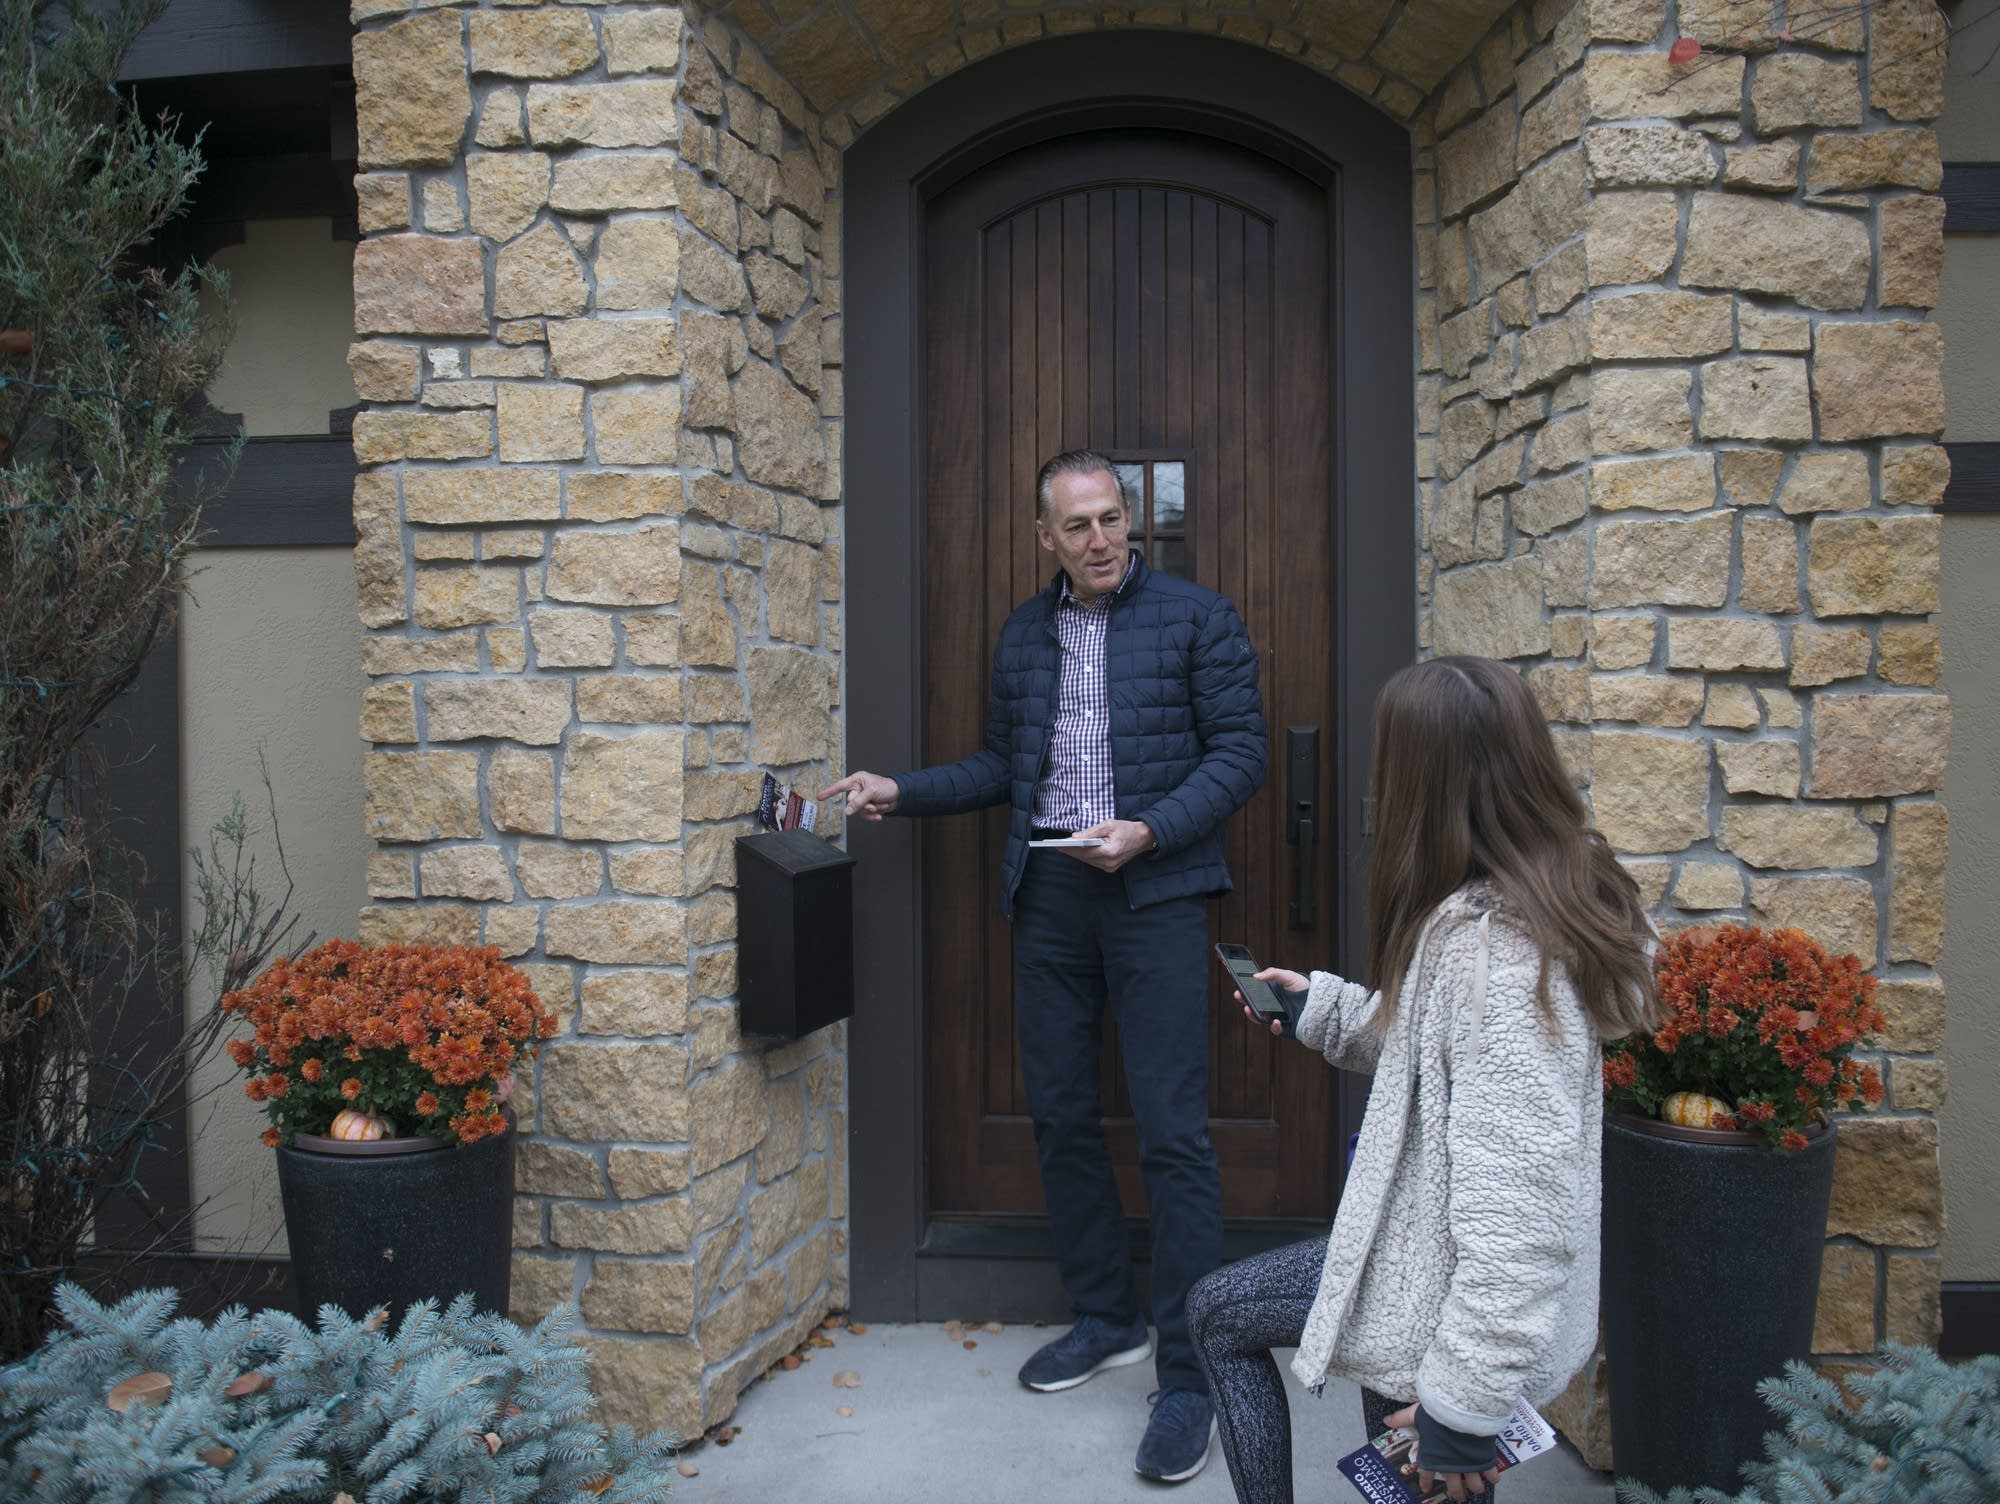 Dario Anselmo drops off voter literature at a home in Edina